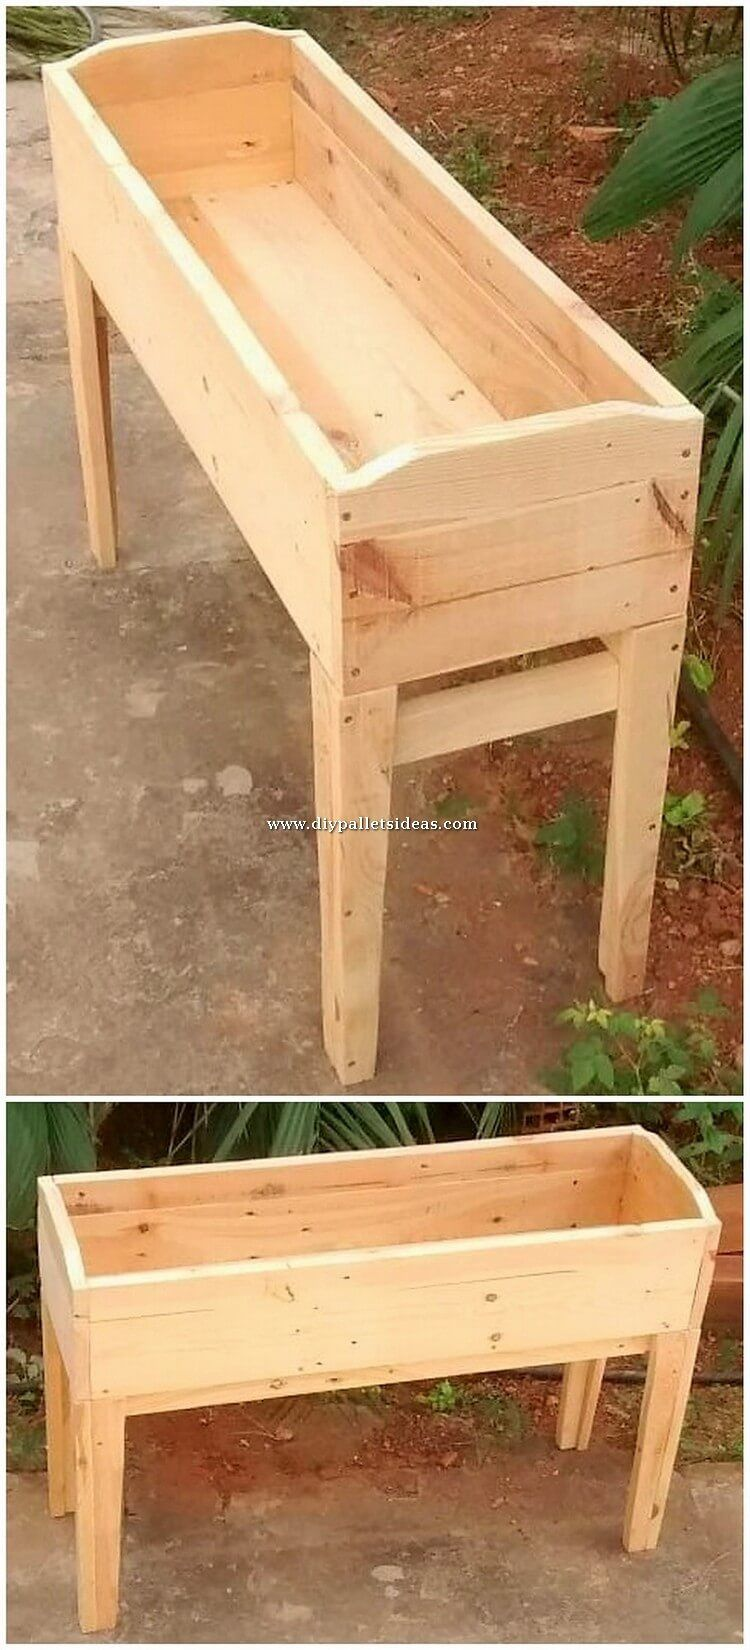 Cheap and Easy to Build DIY Wood Pallet Ideas #woodprojects